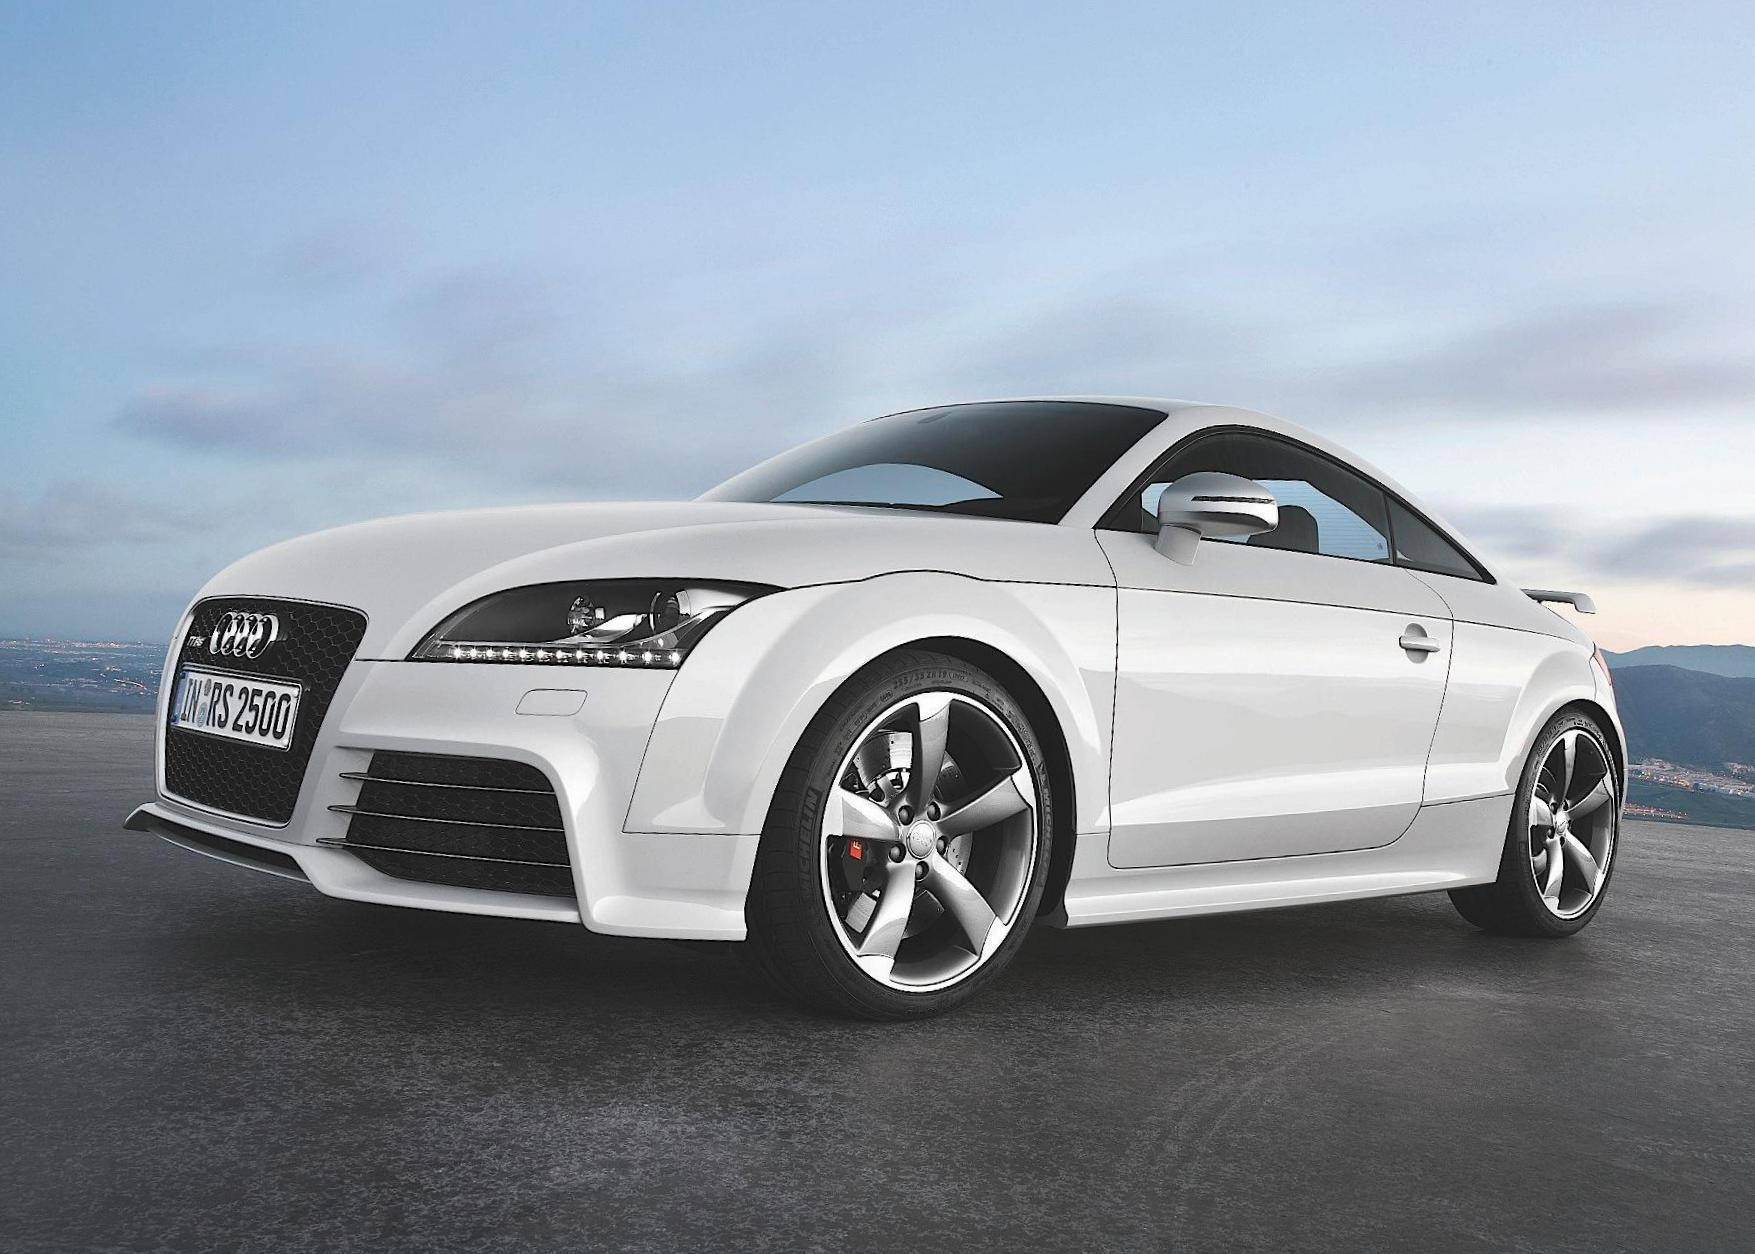 TT Coupe Audi models hatchback